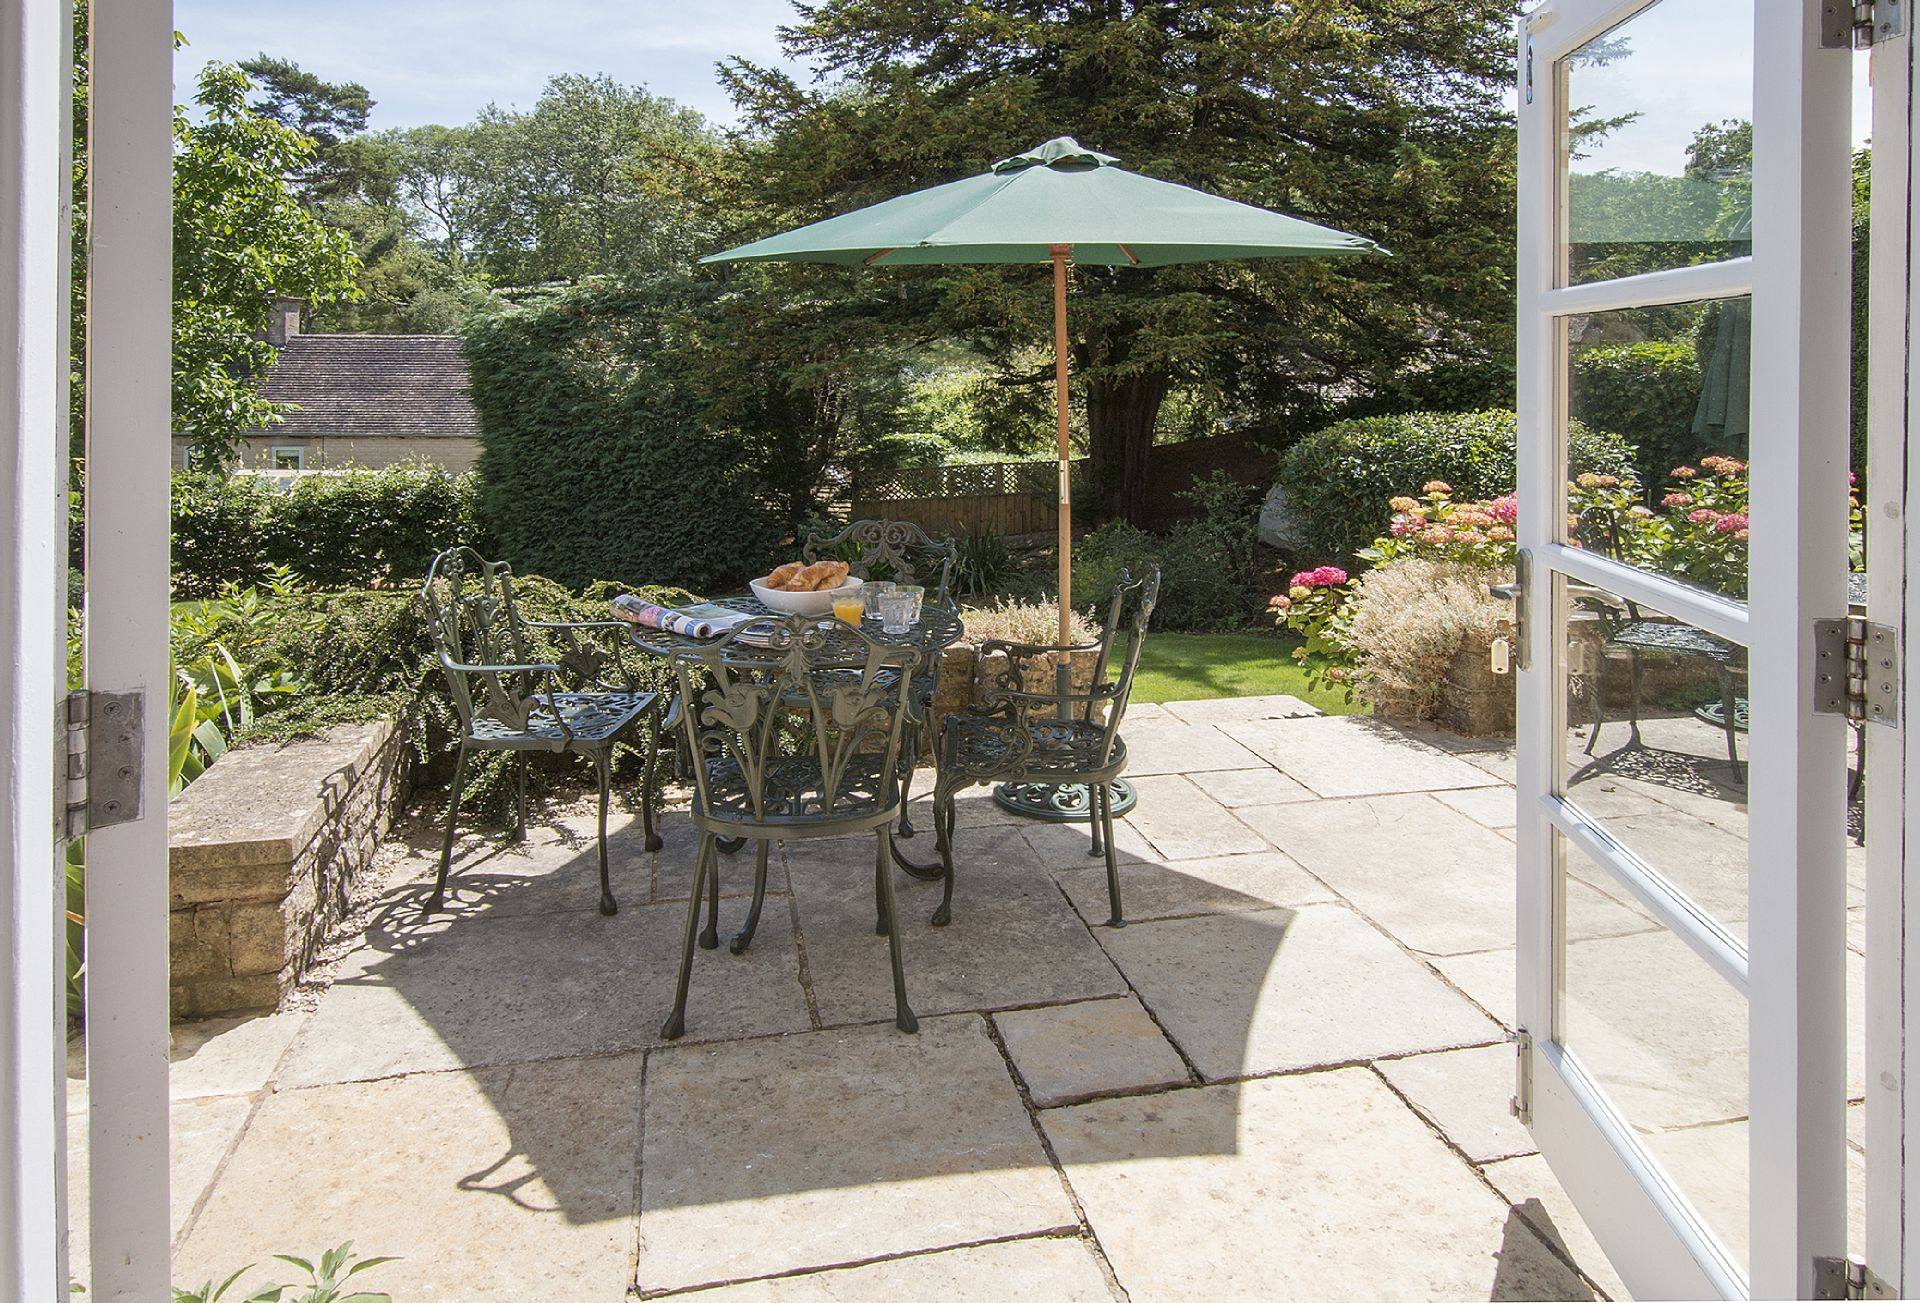 A patio area with bistro tables and chairs to seat eight. A barbecue is also available